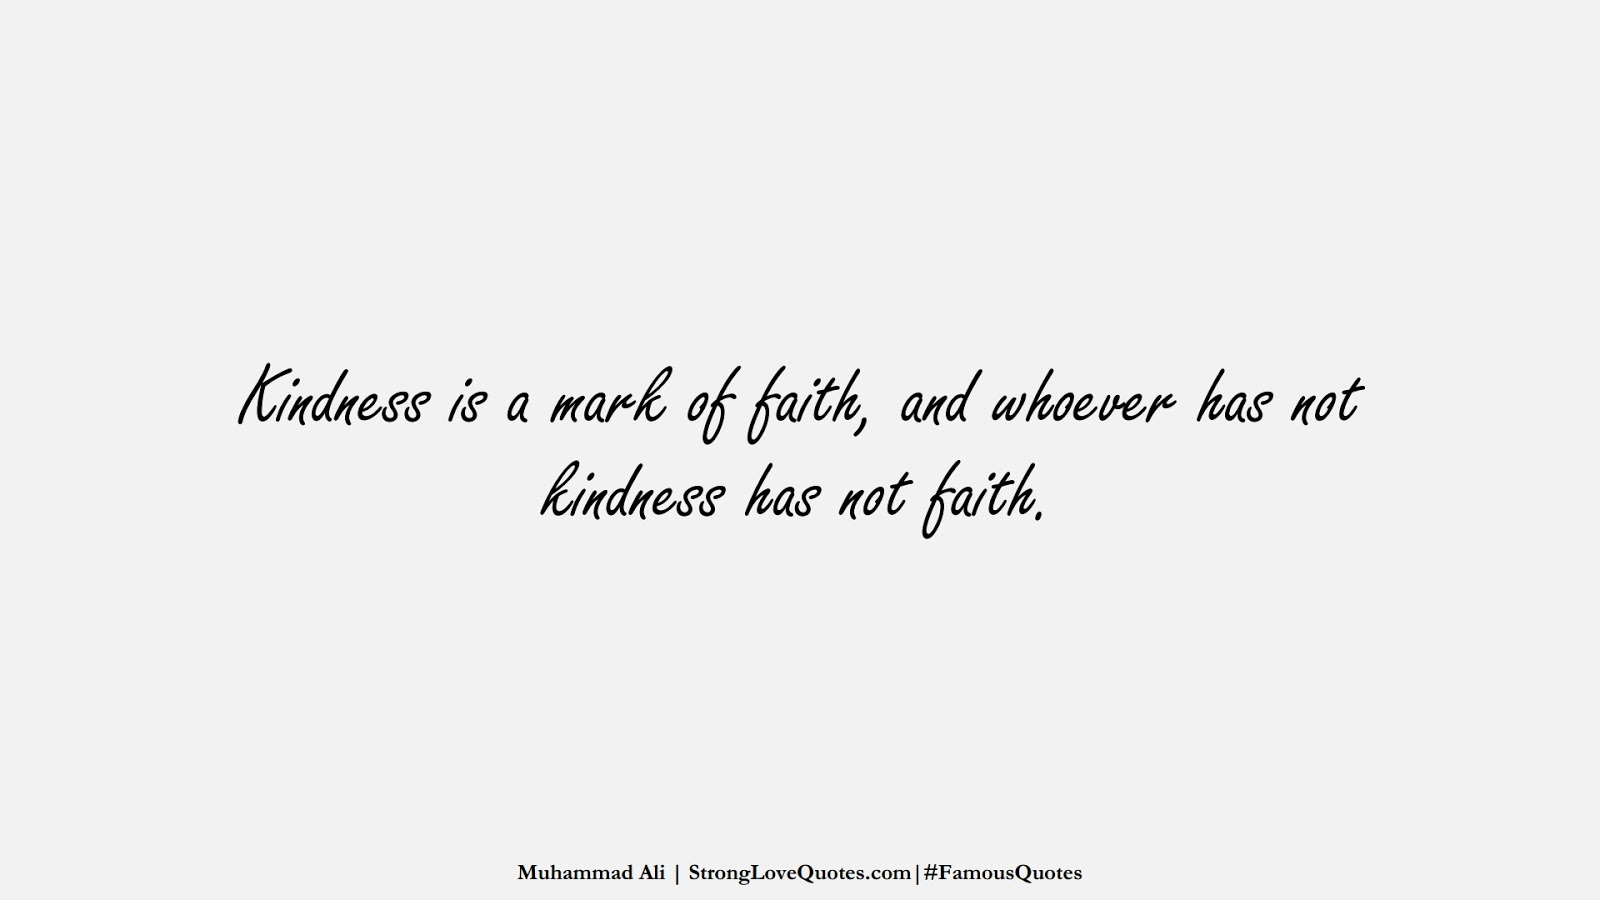 Kindness is a mark of faith, and whoever has not kindness has not faith. (Muhammad Ali);  #FamousQuotes